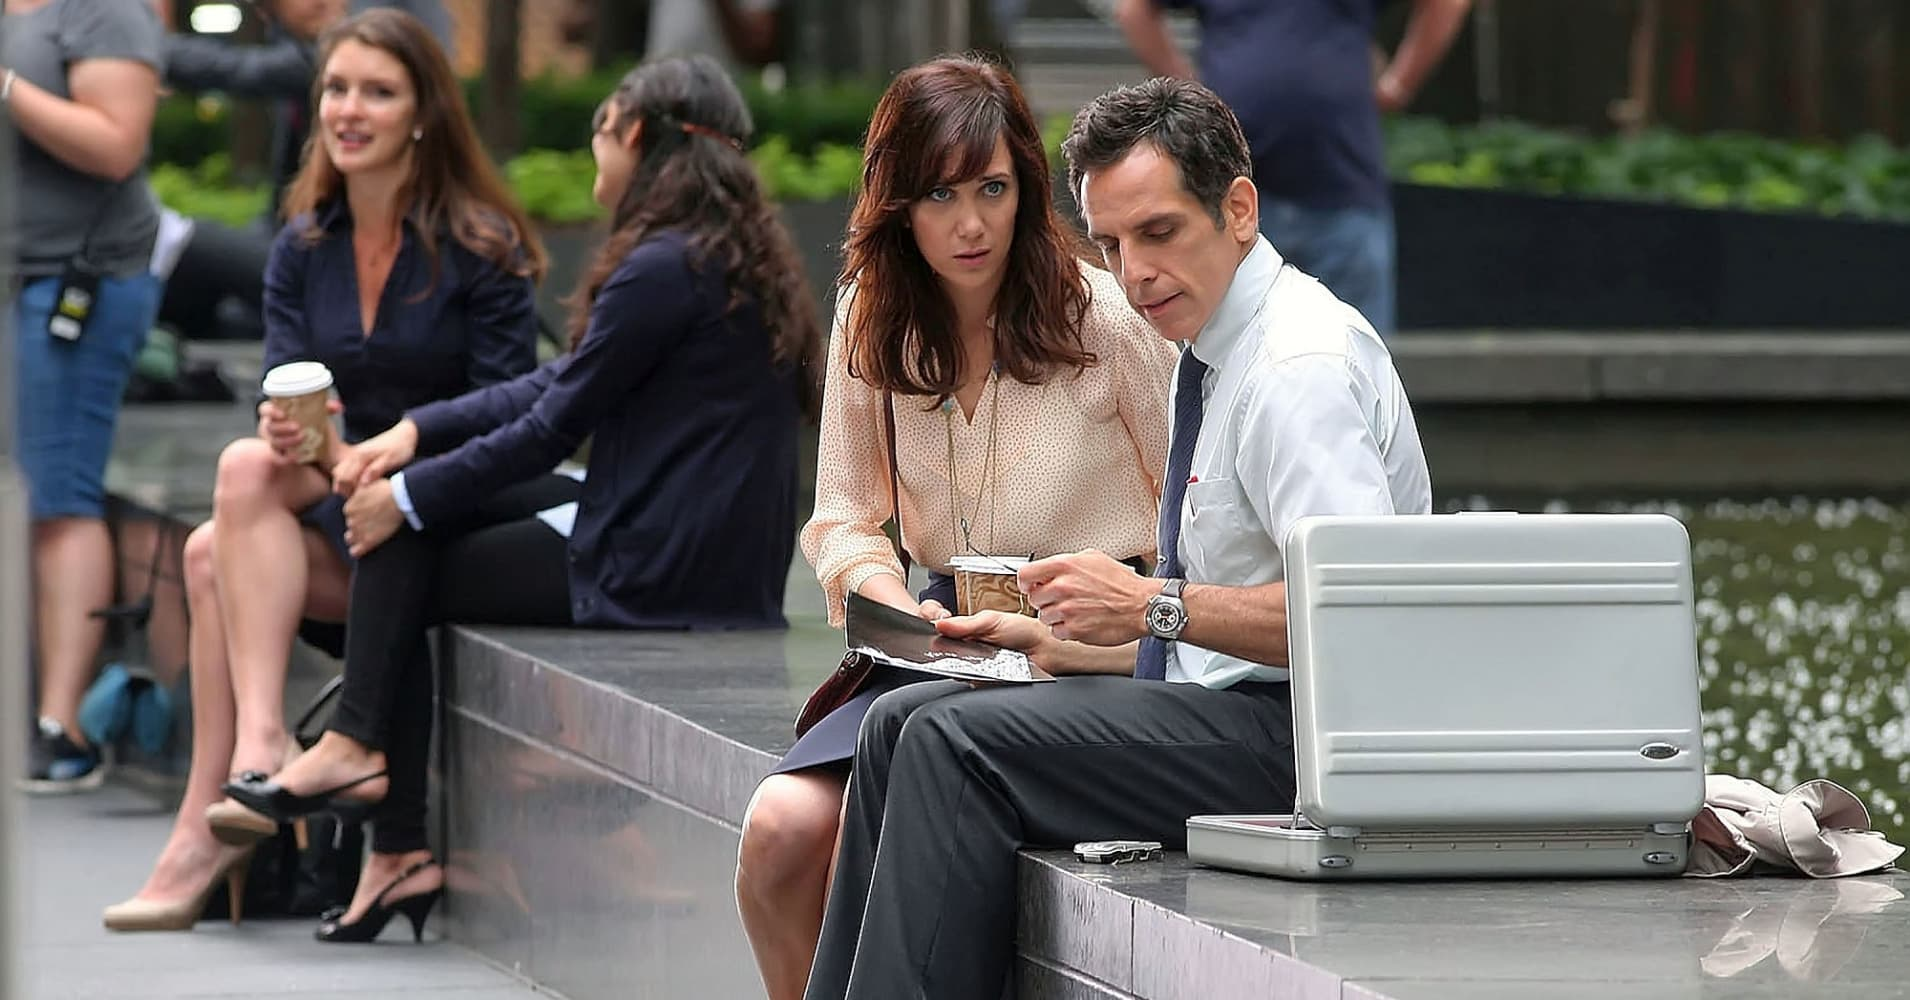 Ben Stiller and Kristen Wiig on the set of 'The Secret Life Of Walter Mitty'